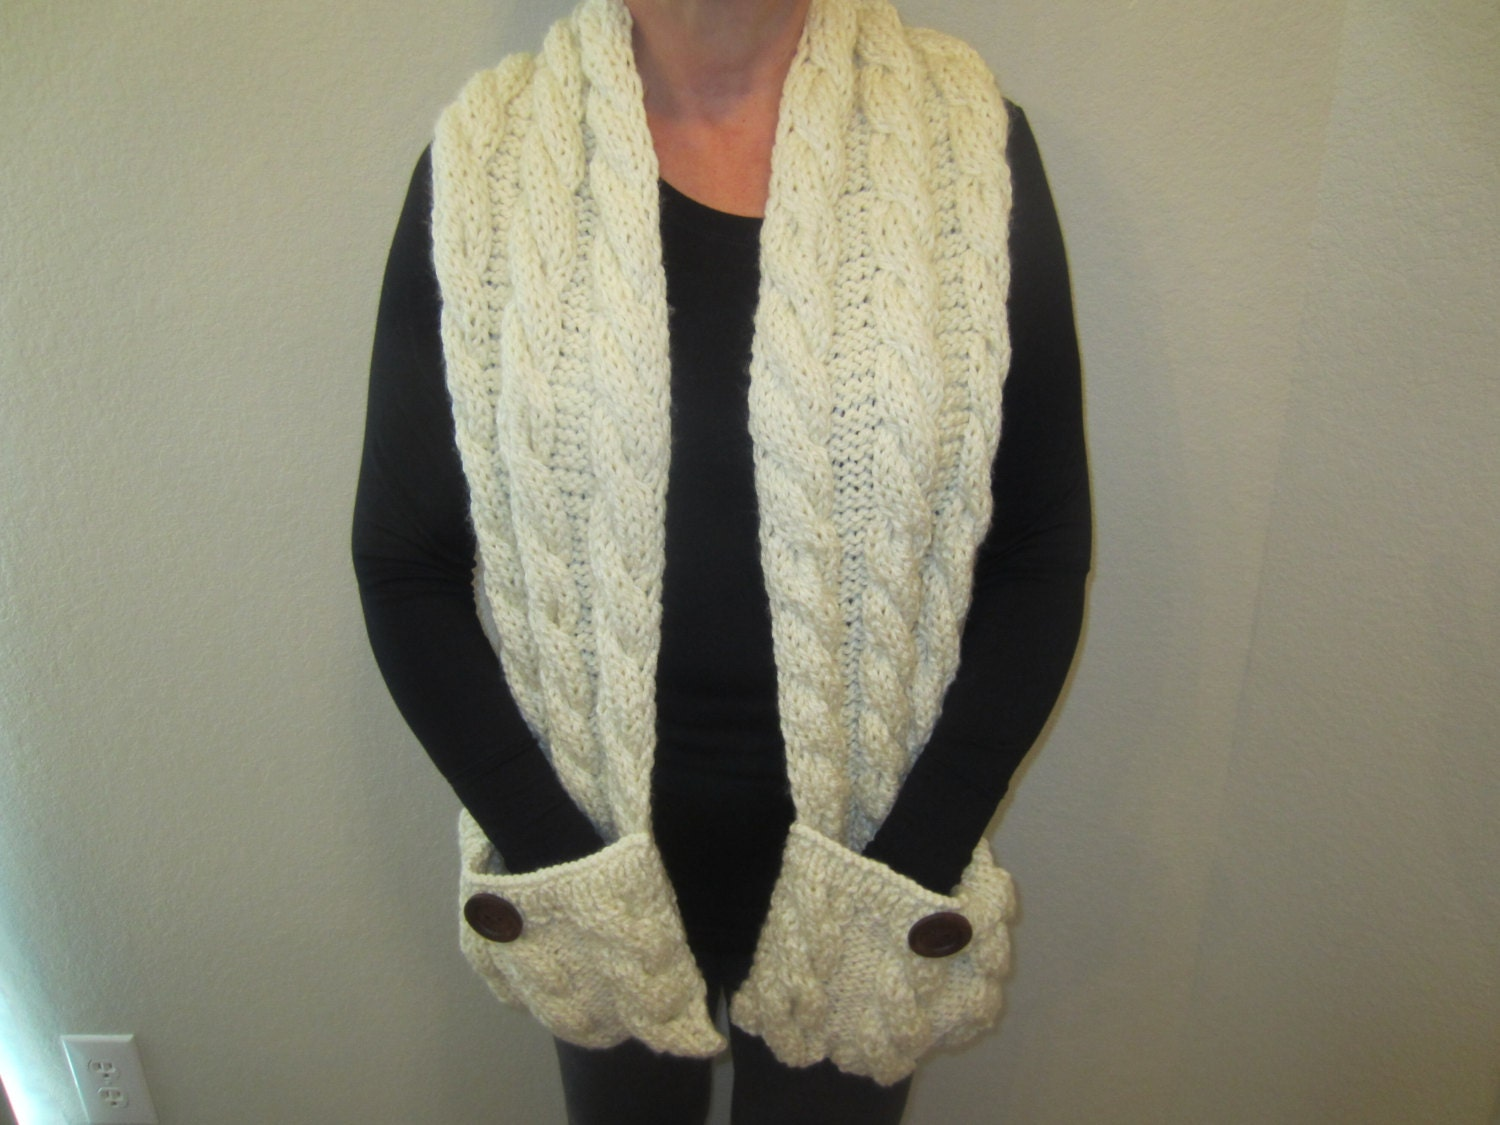 Knitting Patterns Scarves With Pockets : Cream Hand Knit Scarf With Pockets